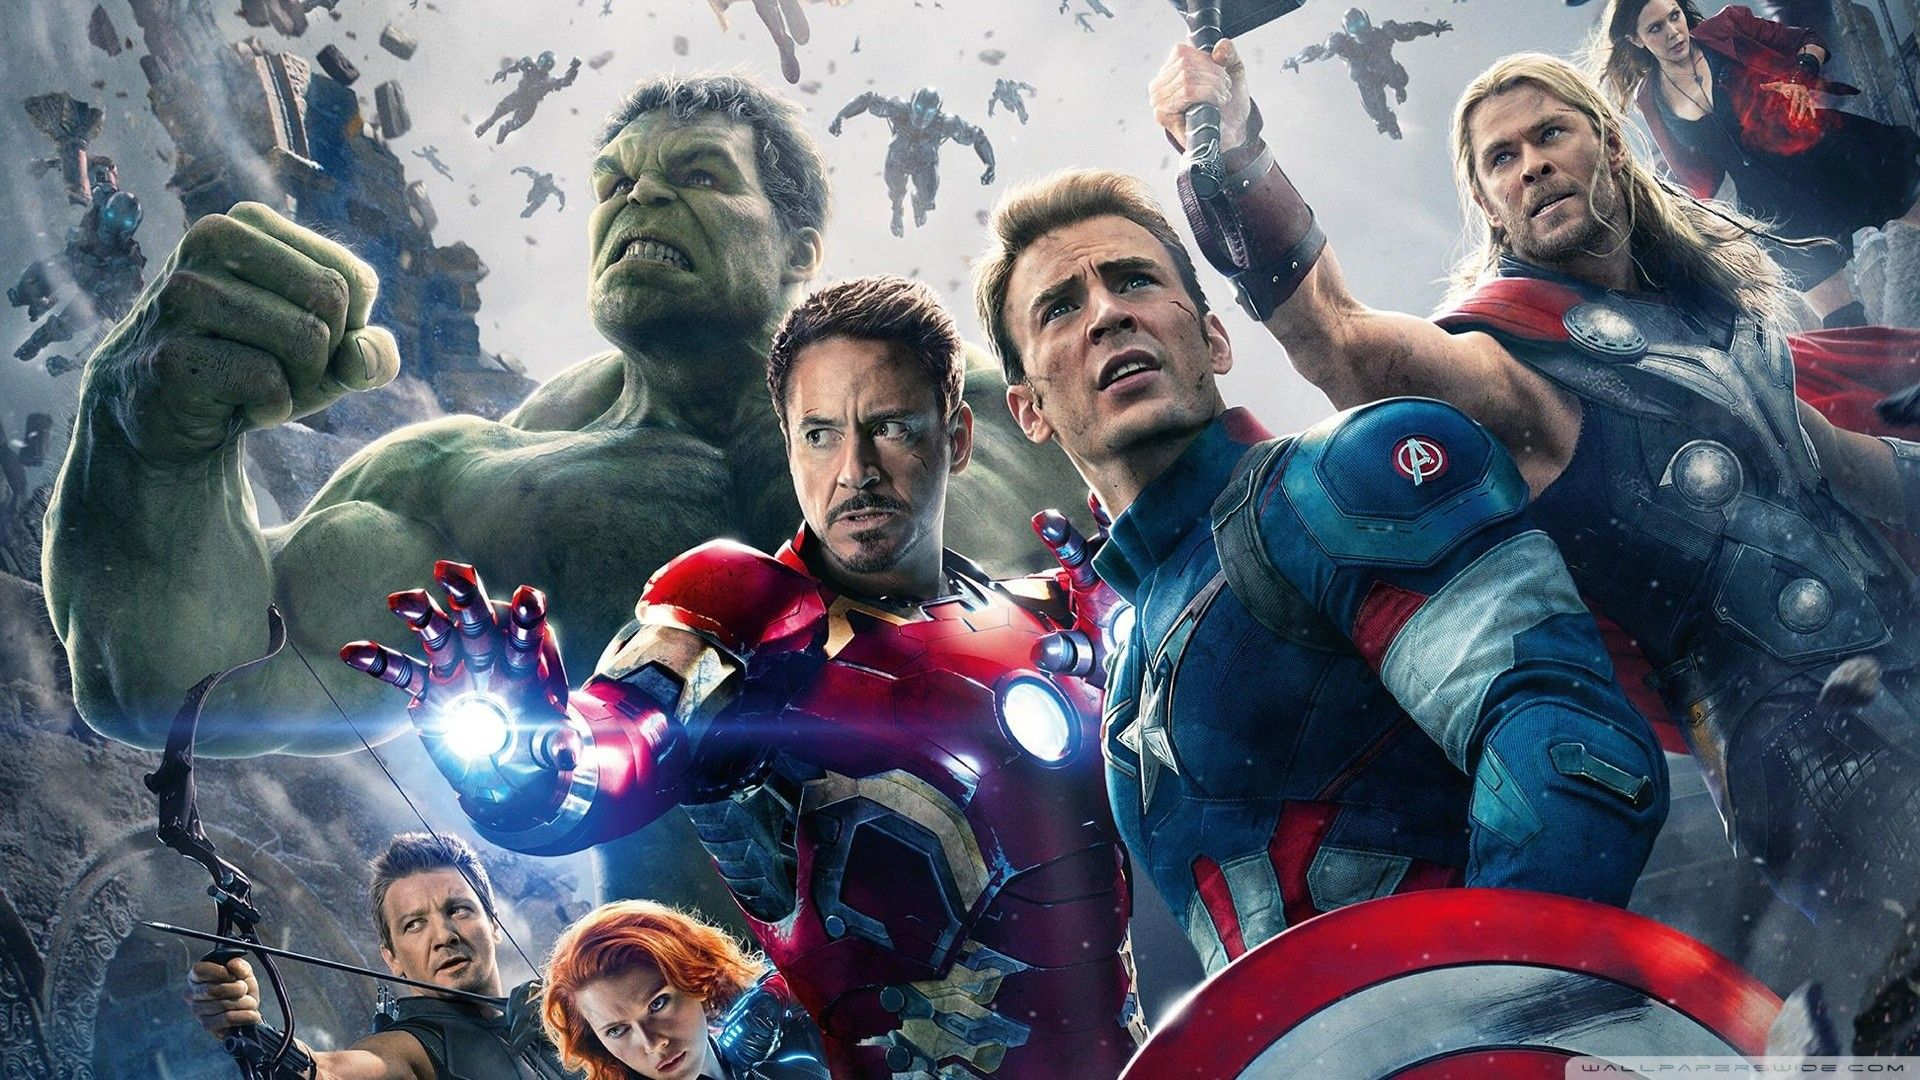 1920x1080 Marvels Avengers Age Of Ultron Hd Wide Wallpaper For